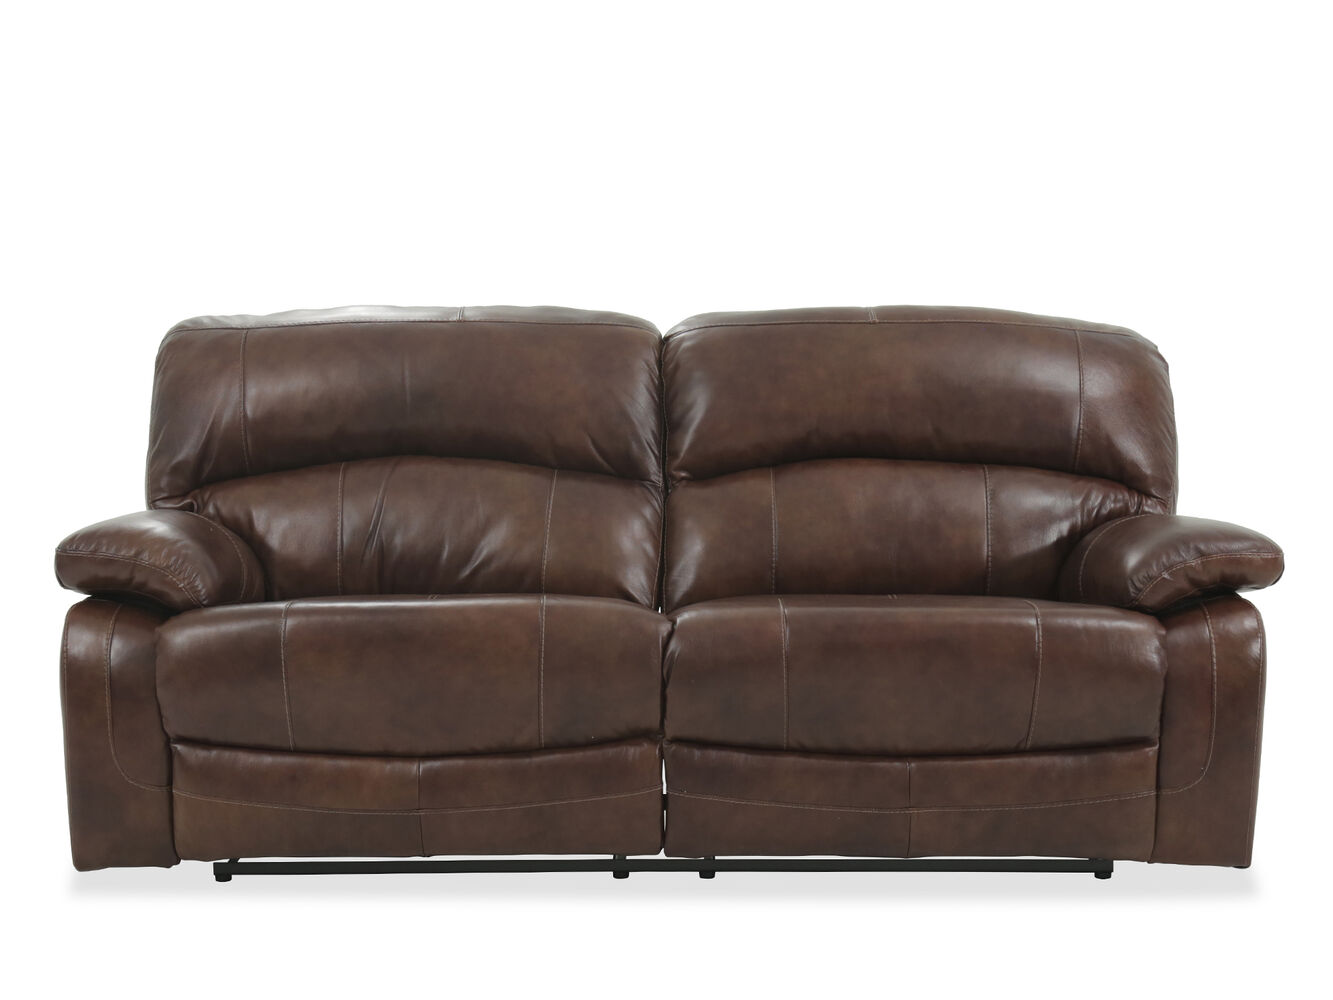 leather 91 power reclining wall saver sofa in brown mathis brothers furniture. Black Bedroom Furniture Sets. Home Design Ideas